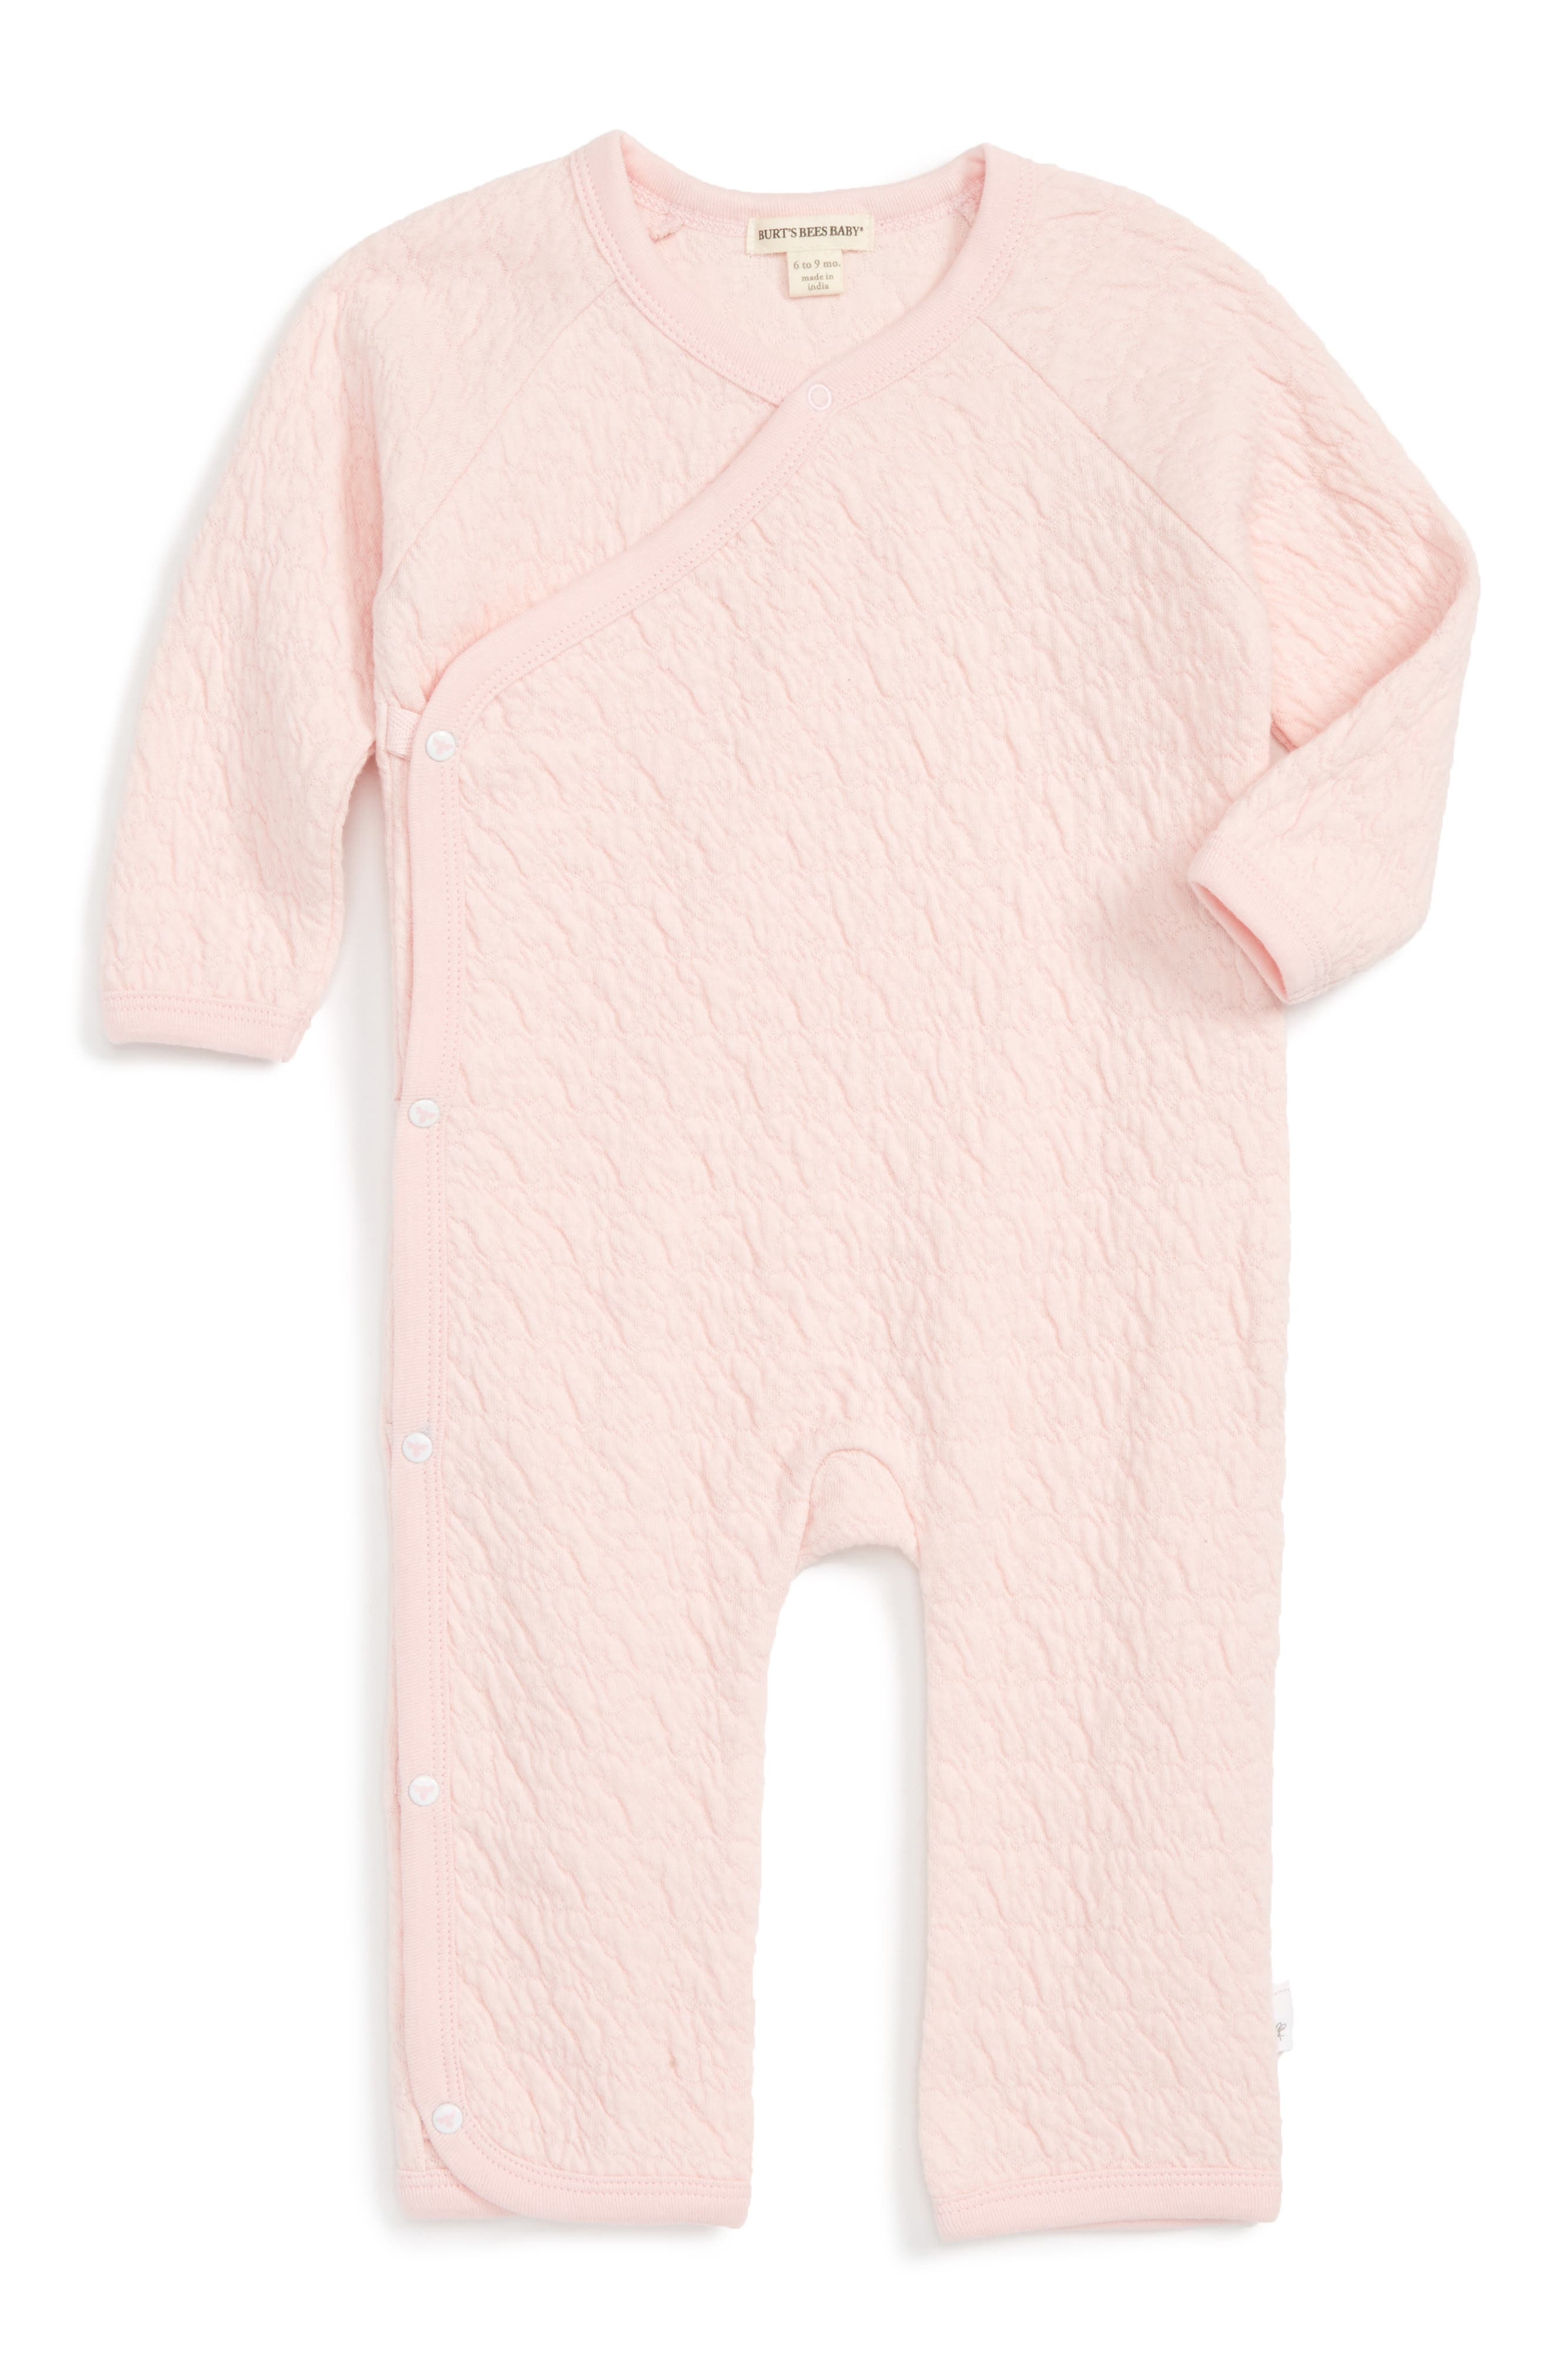 Burt's Bees Baby Quilted Organic Cotton Romper (Baby Girls)